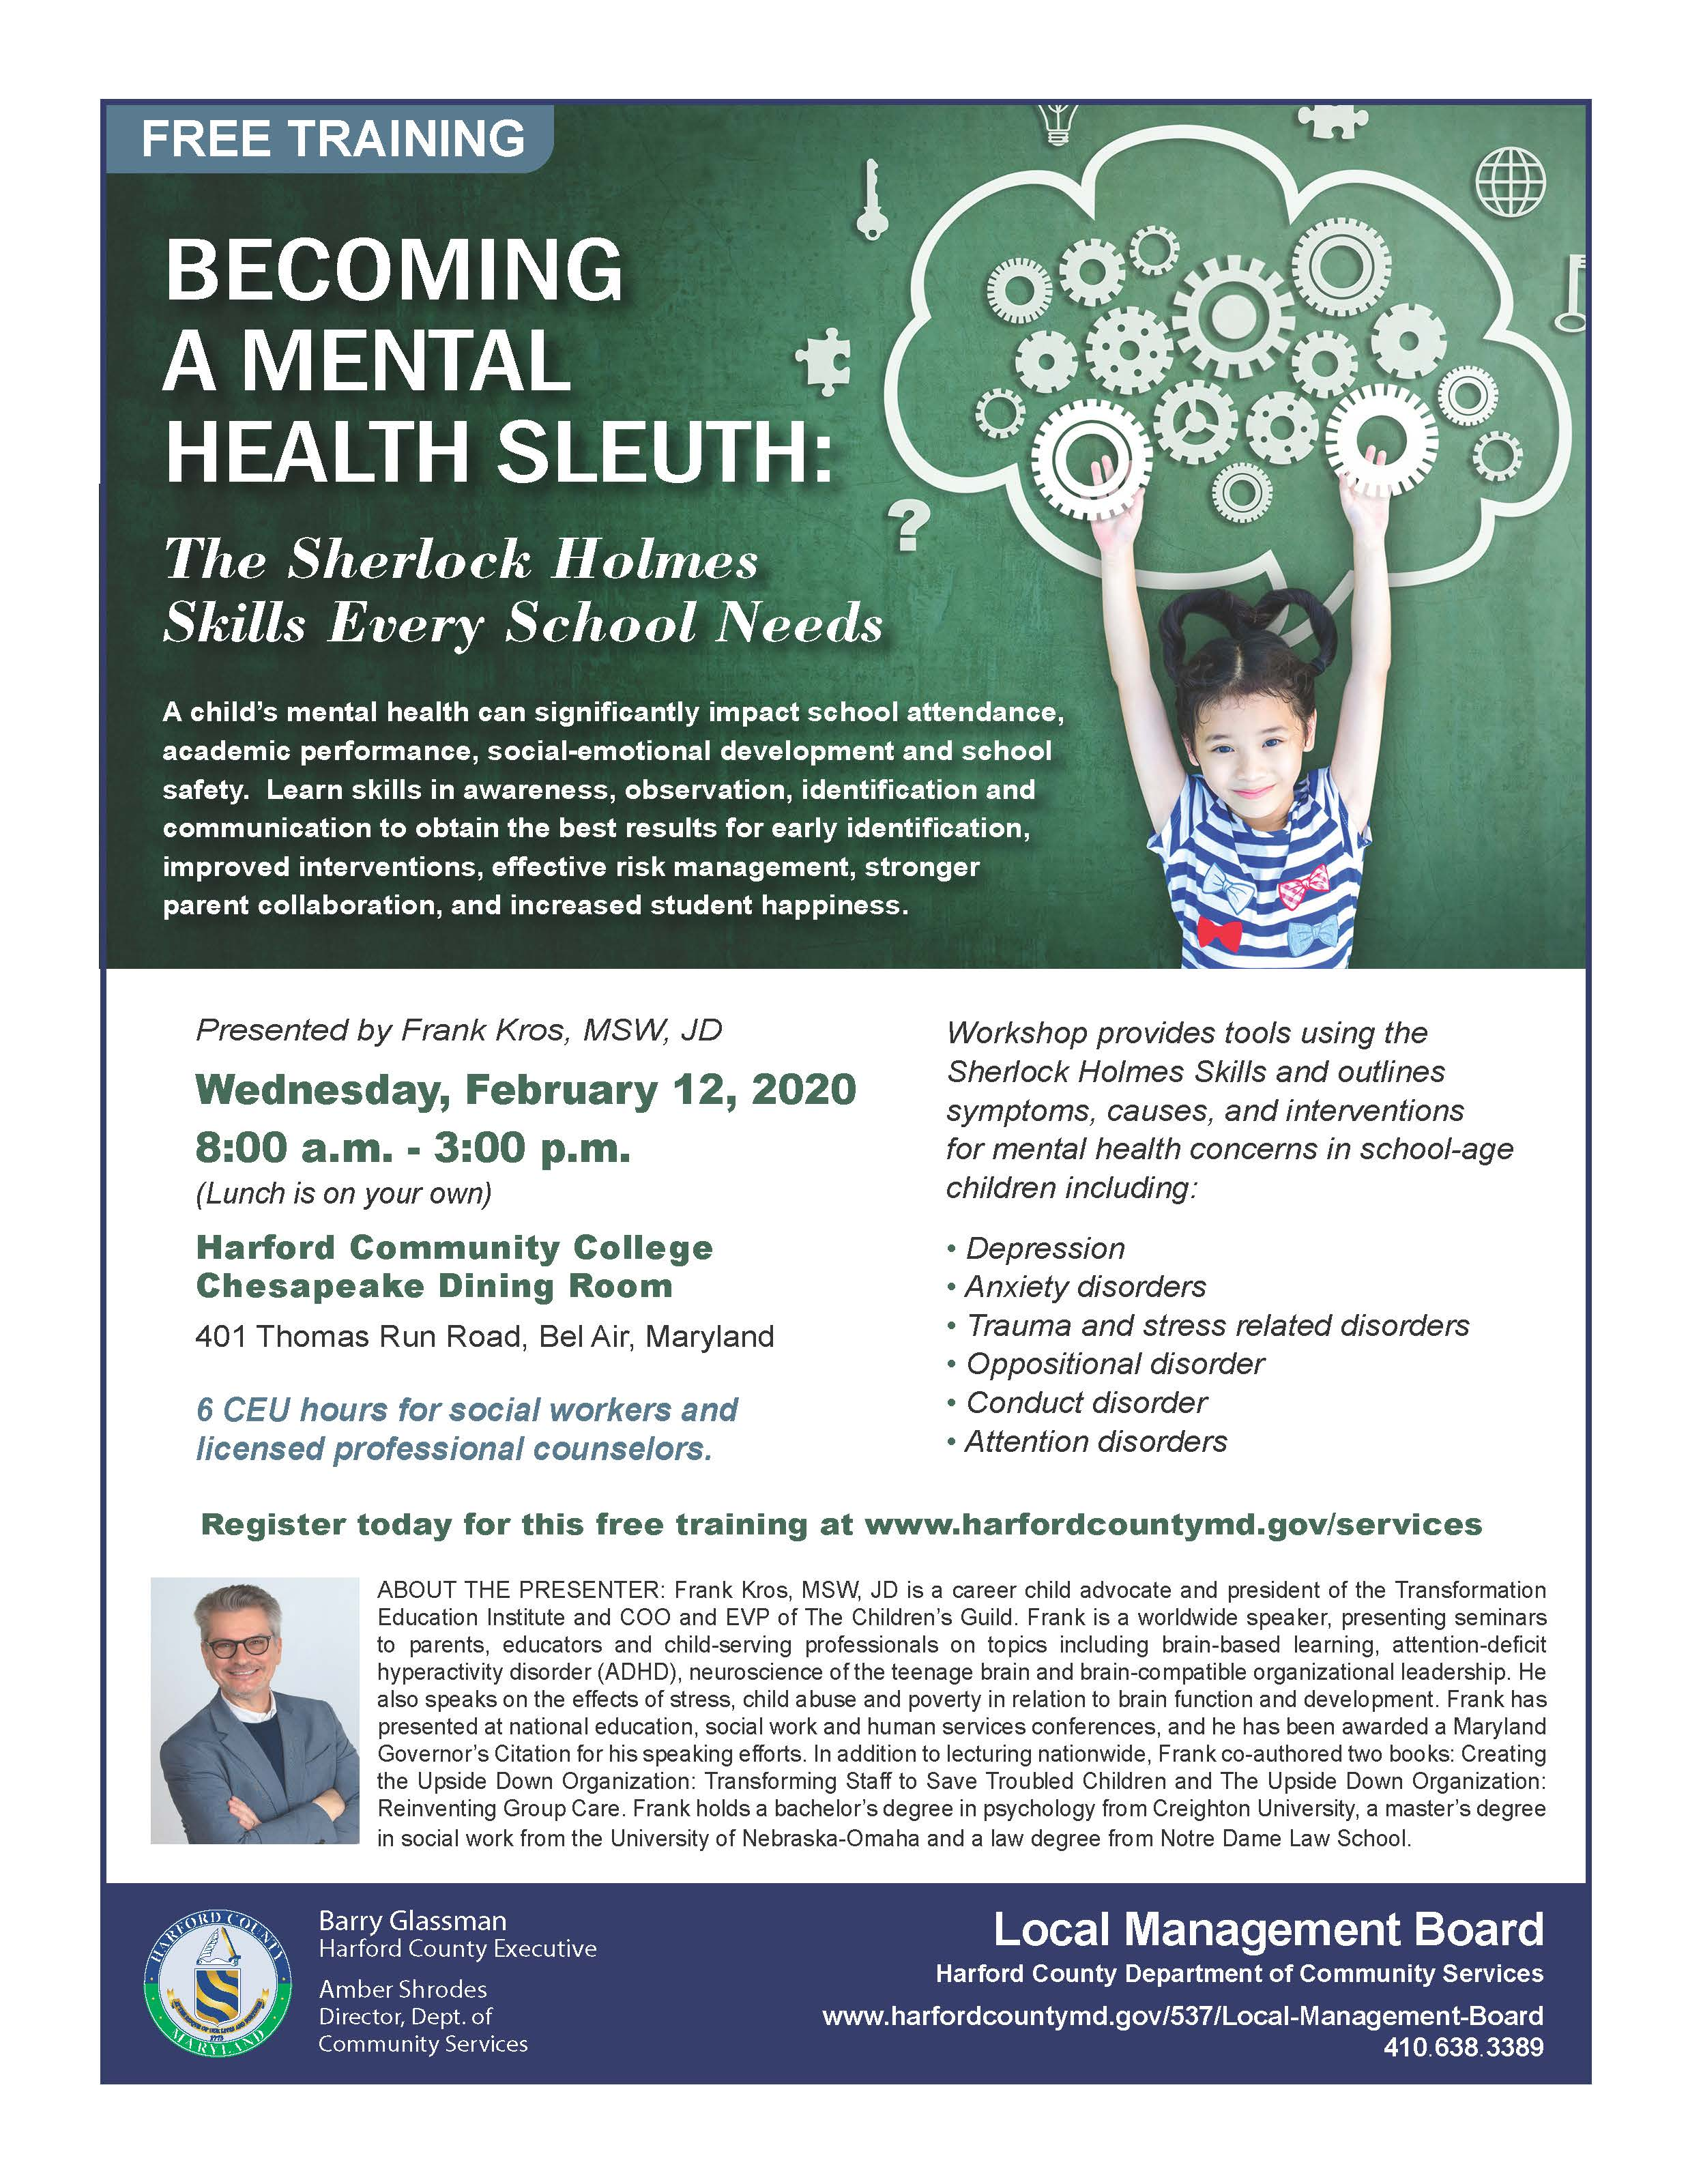 Become a Mental Health Sleuth Flyer